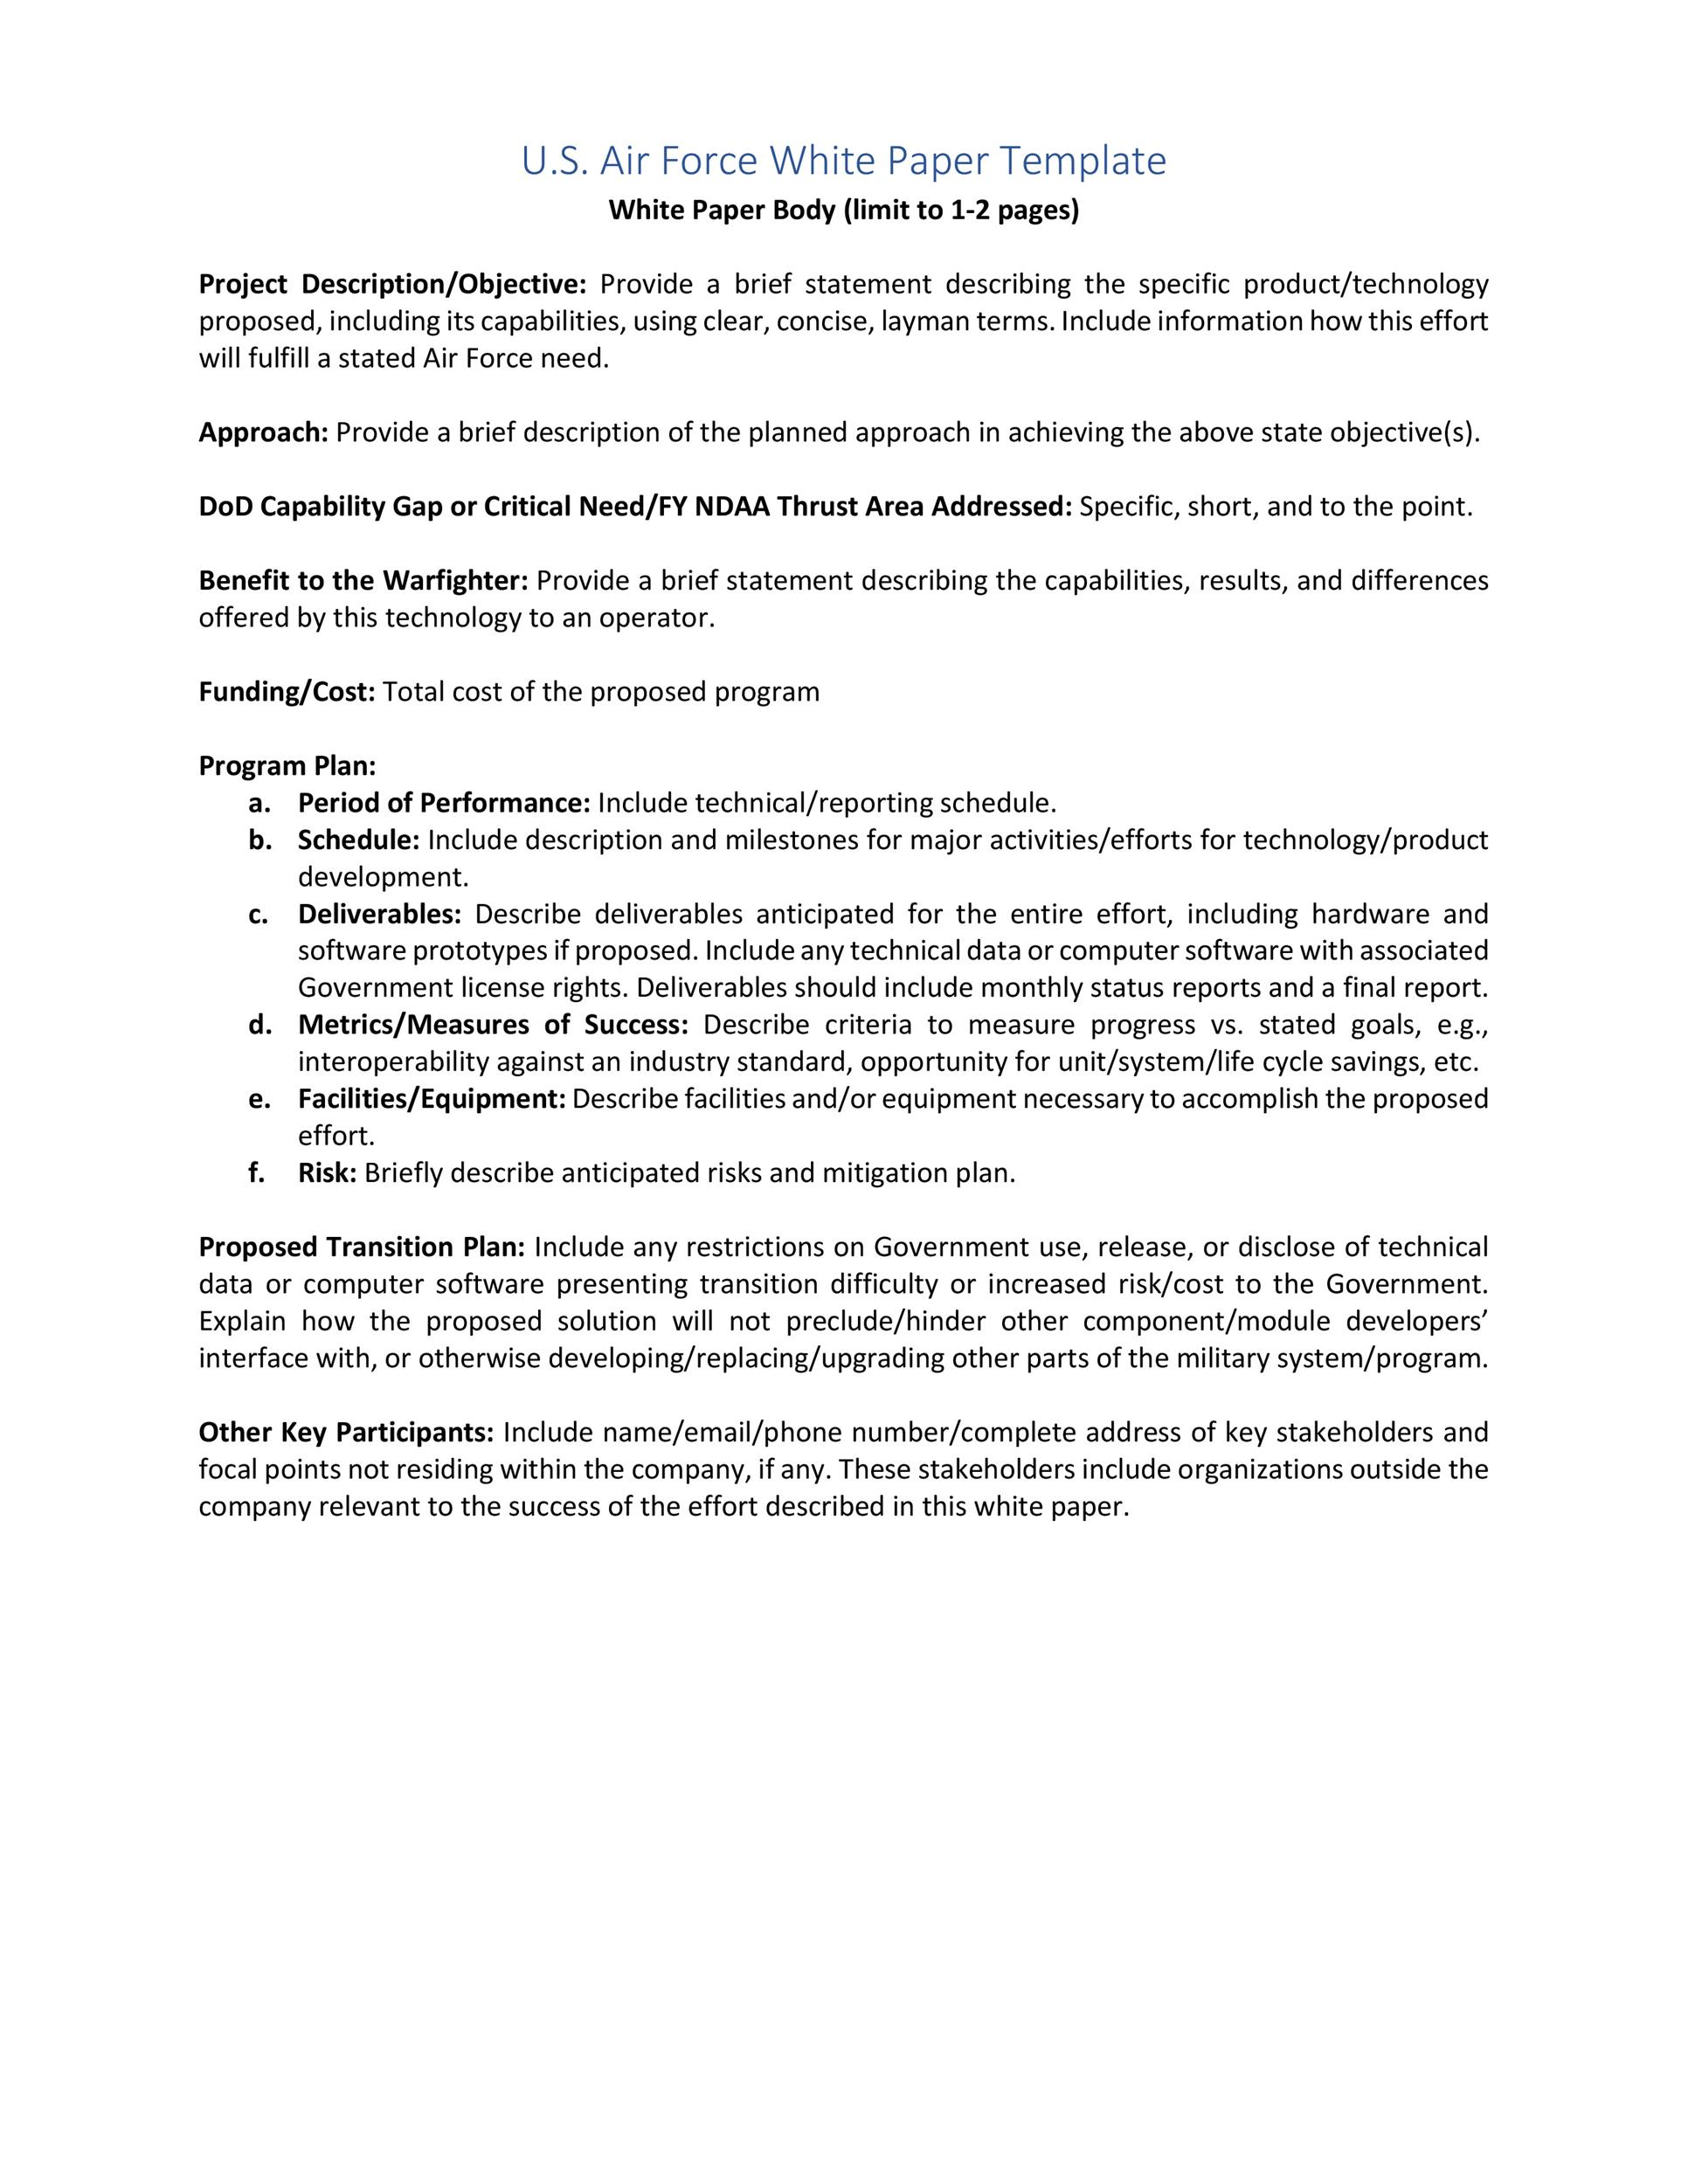 Free white paper template 11